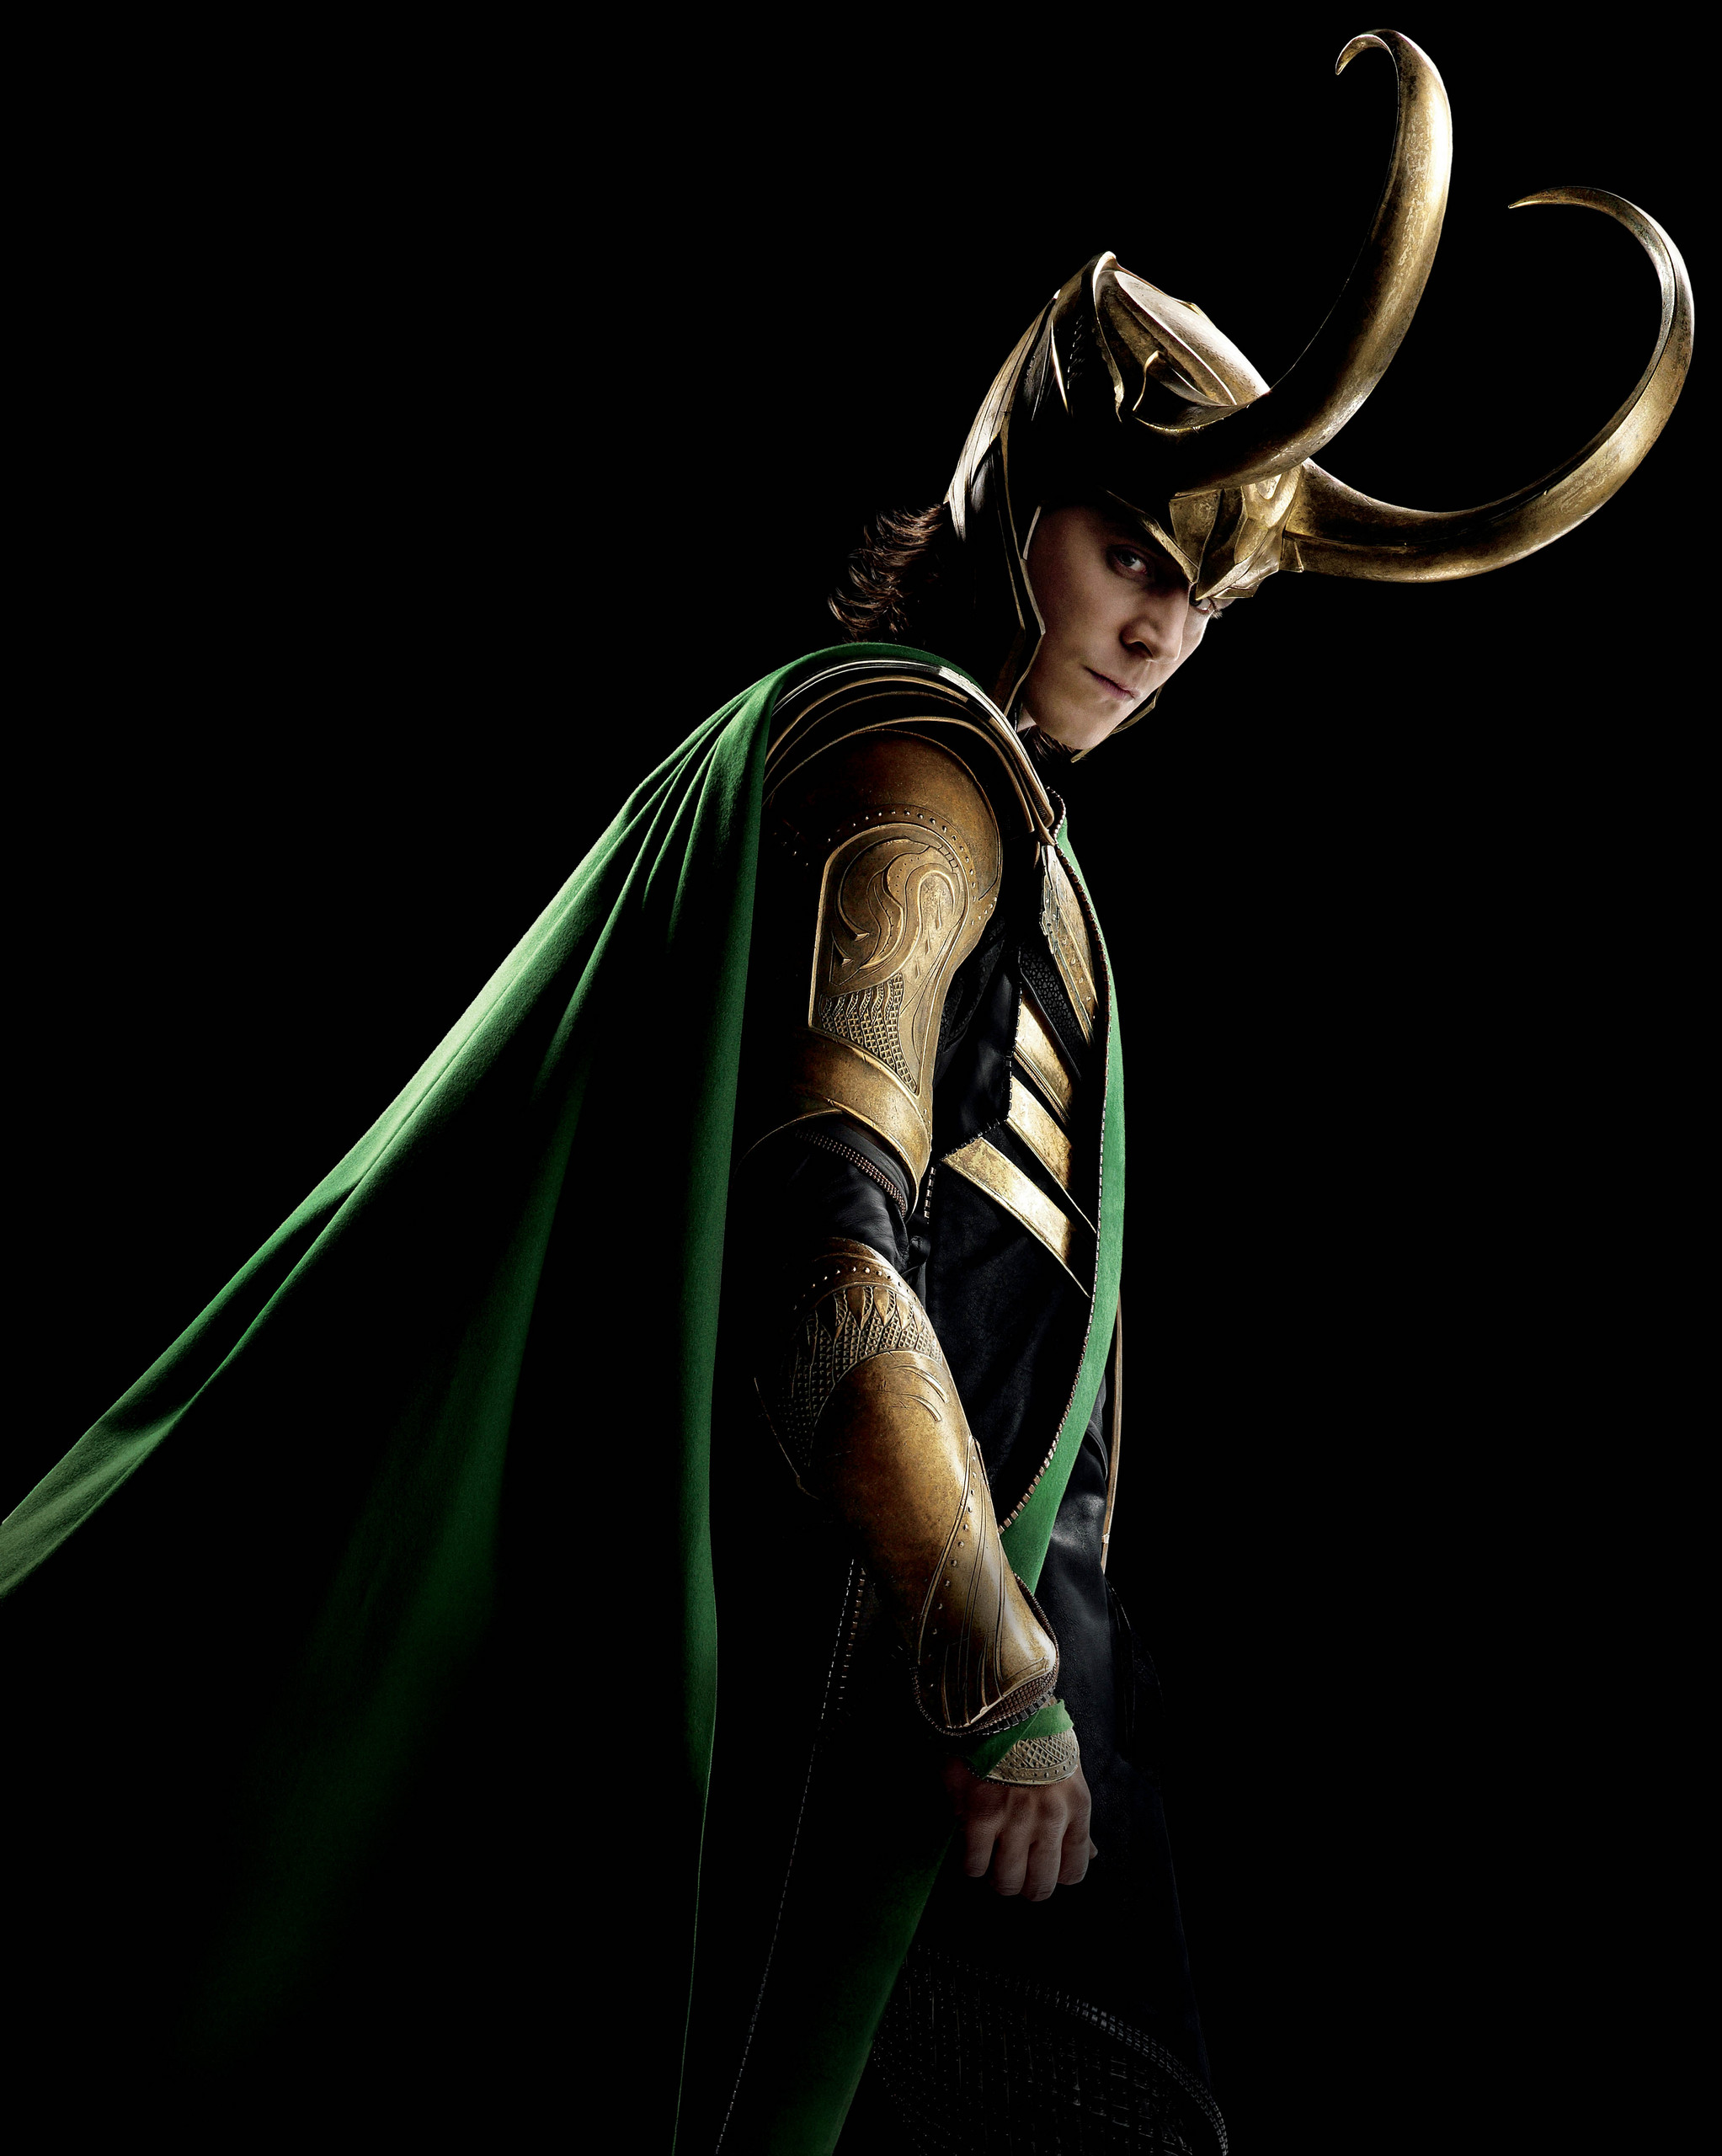 Loki - The Avengers Photo (29489334) - Fanpop